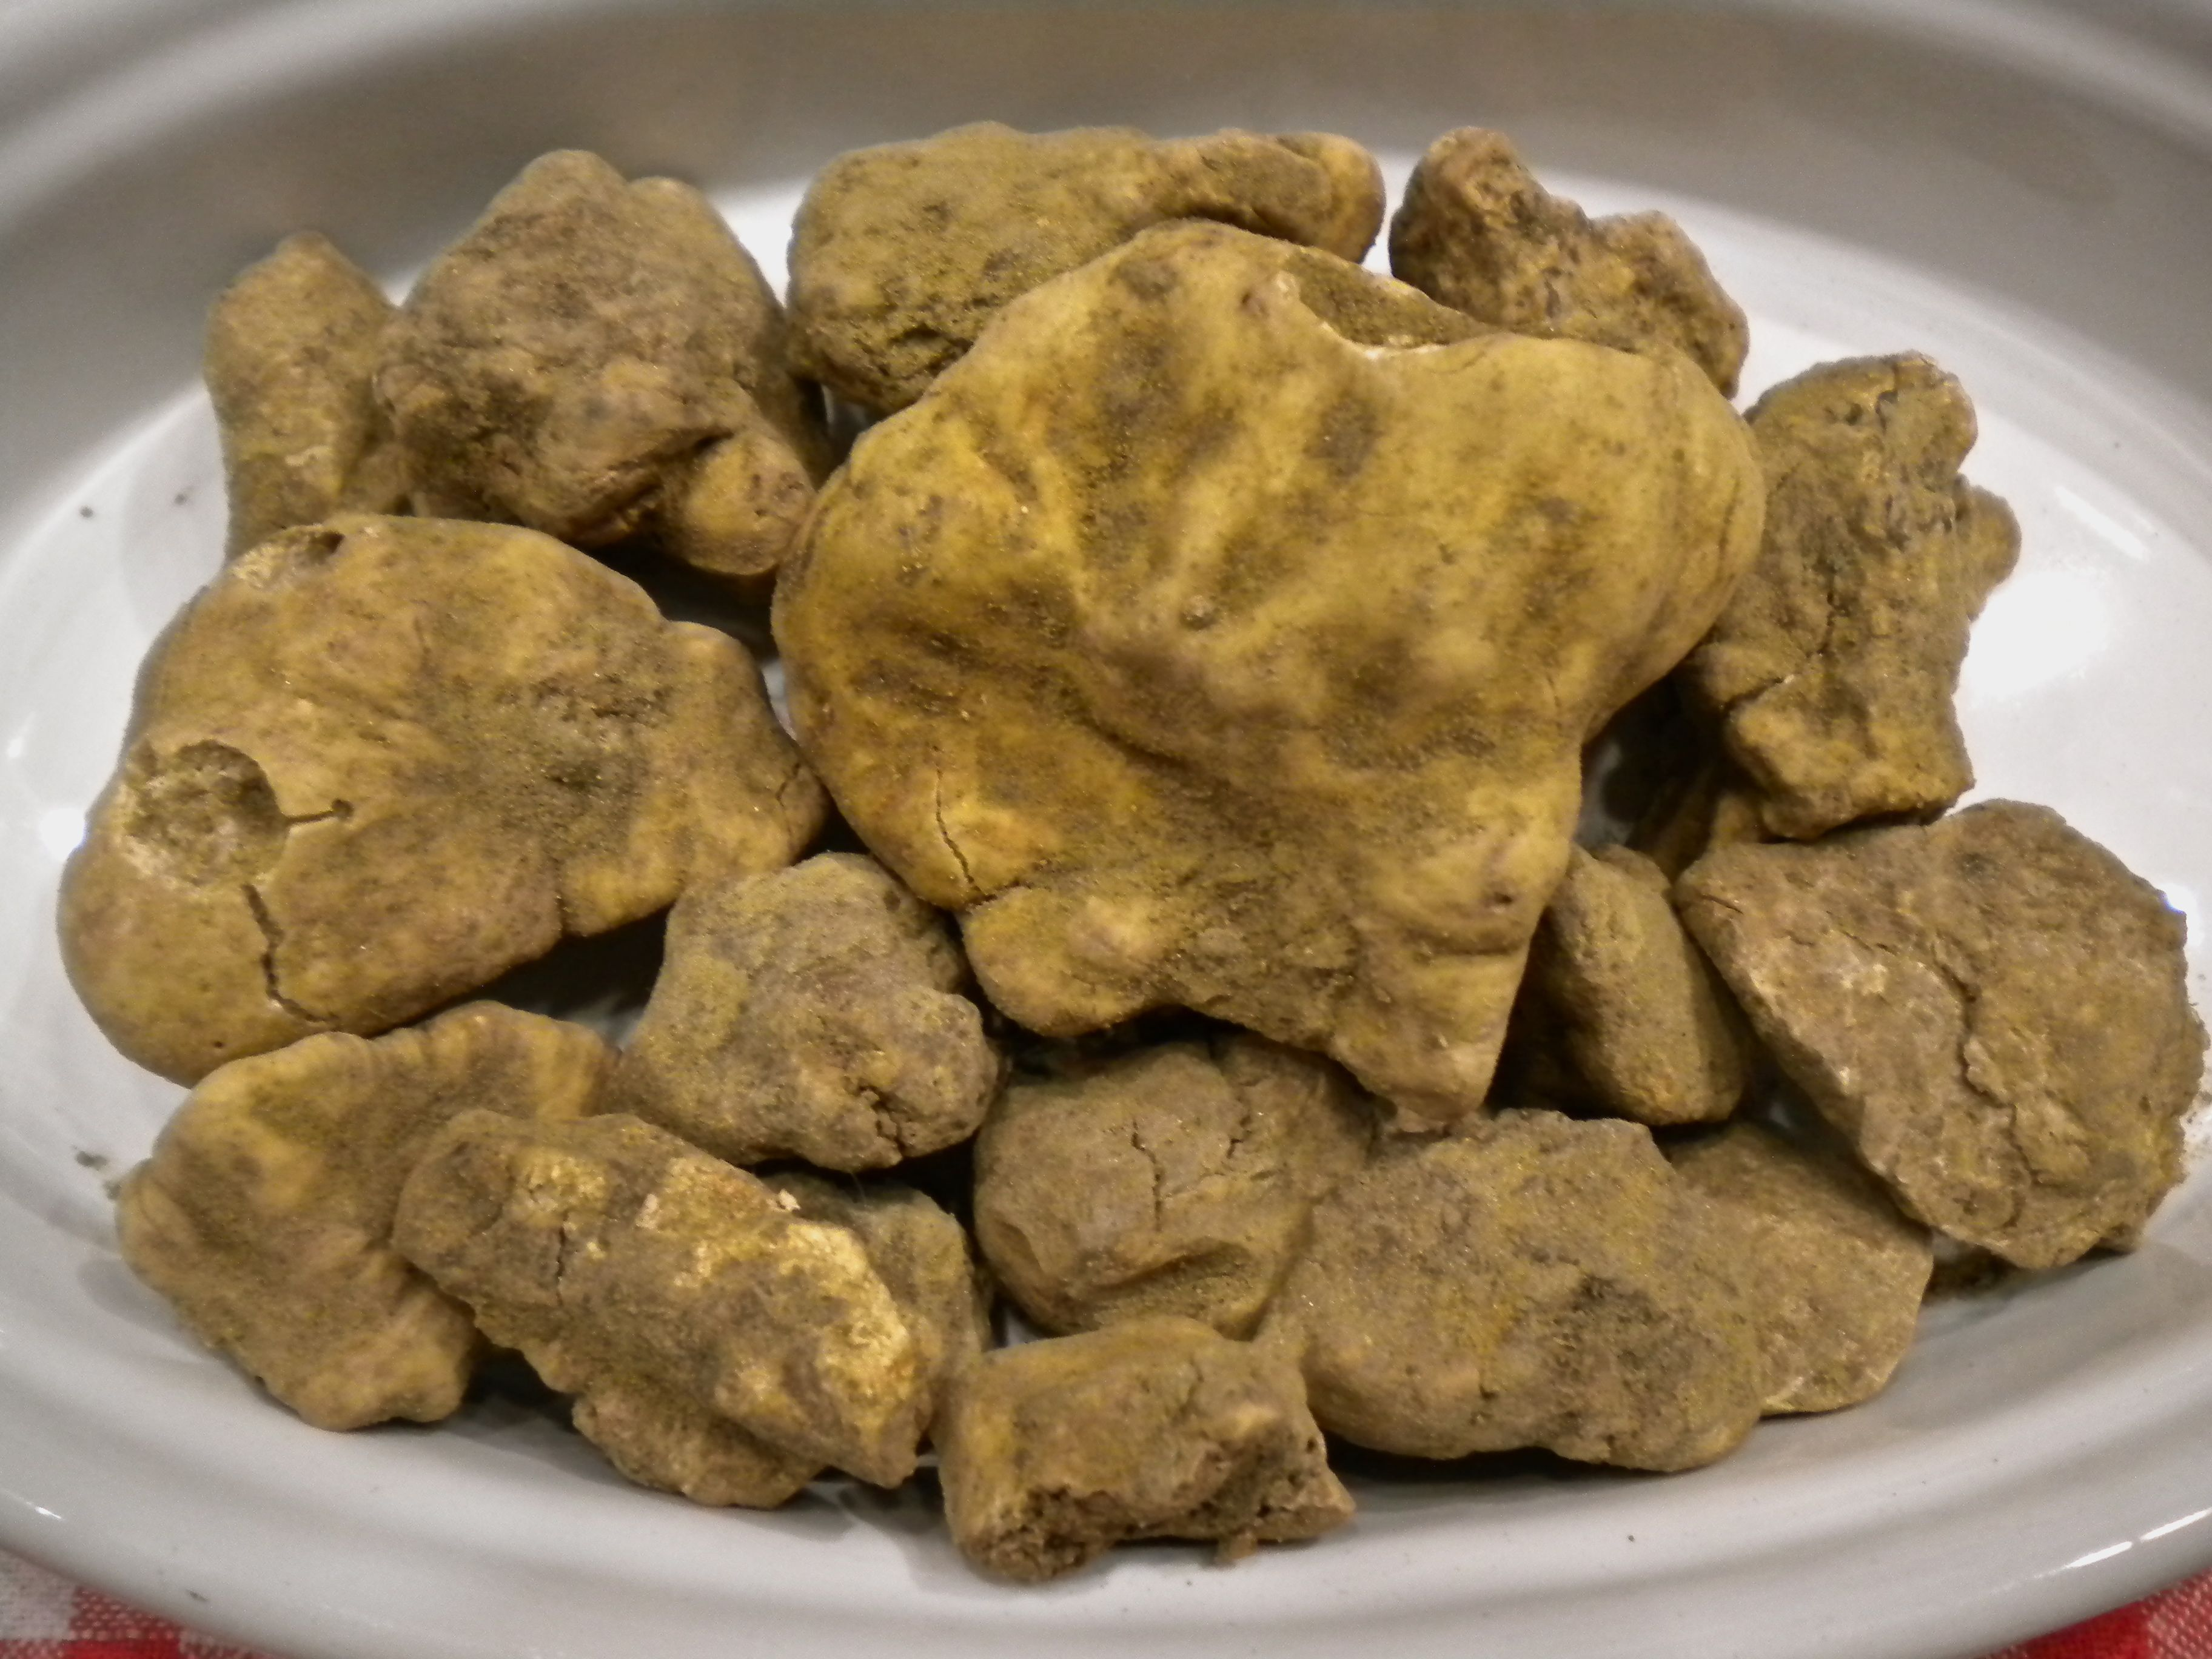 White Truffles .... Begin to make their debut late September and continue until early January.